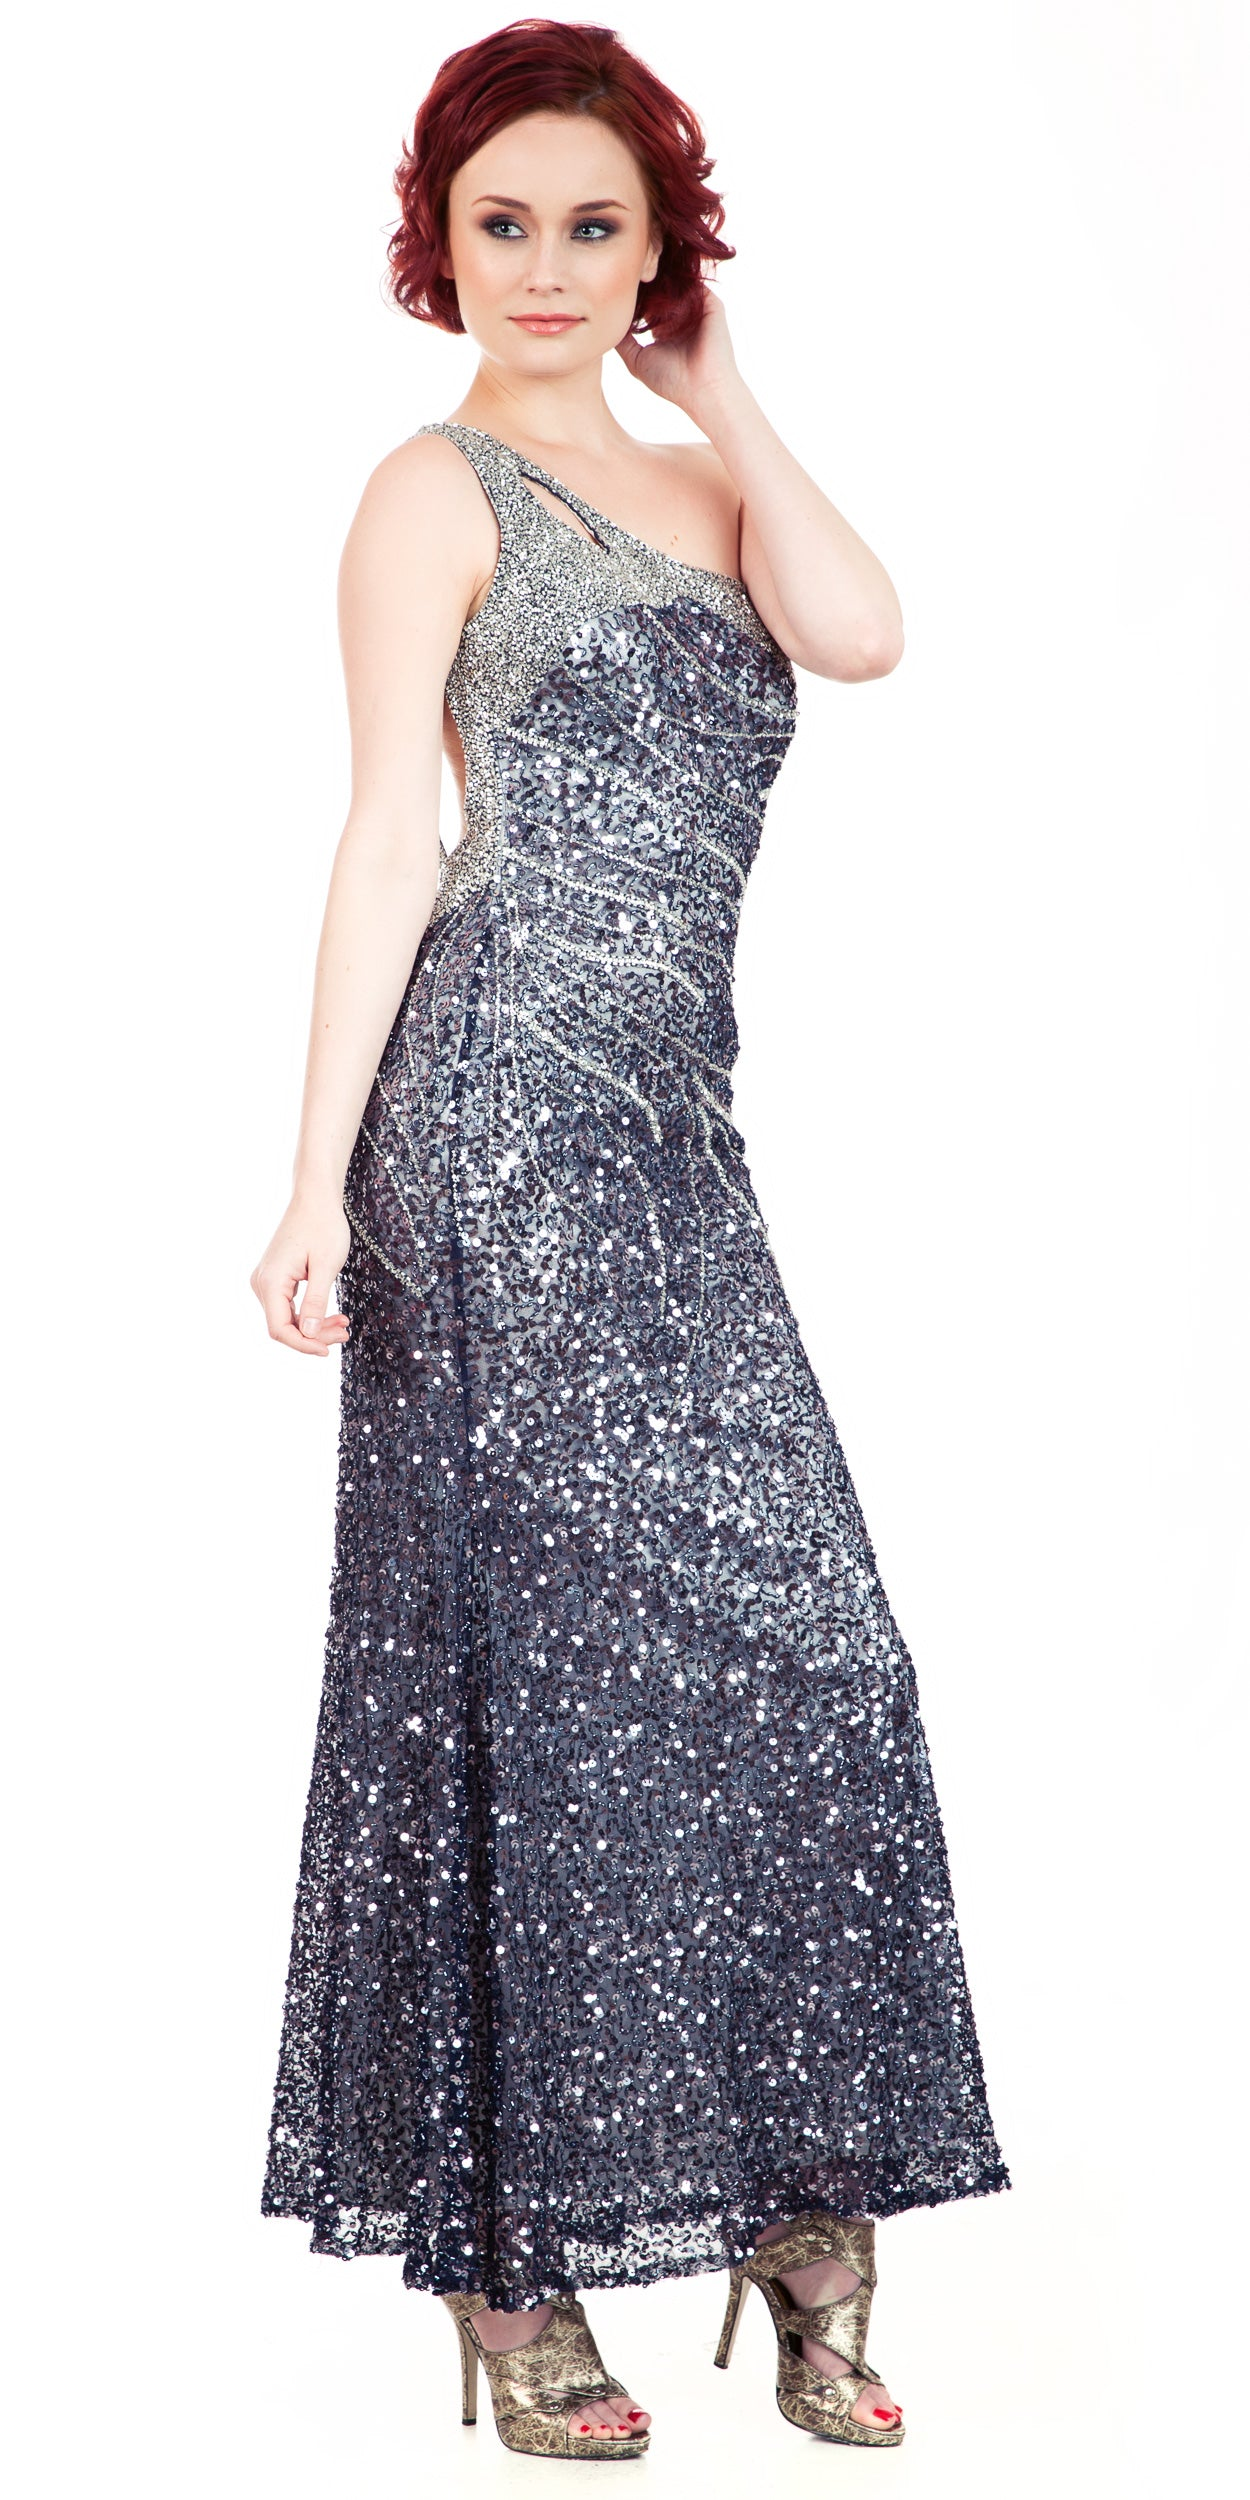 Image of One Shoulder Sparkling Beads & Sequins Long Prom Dress in Navy/Silver